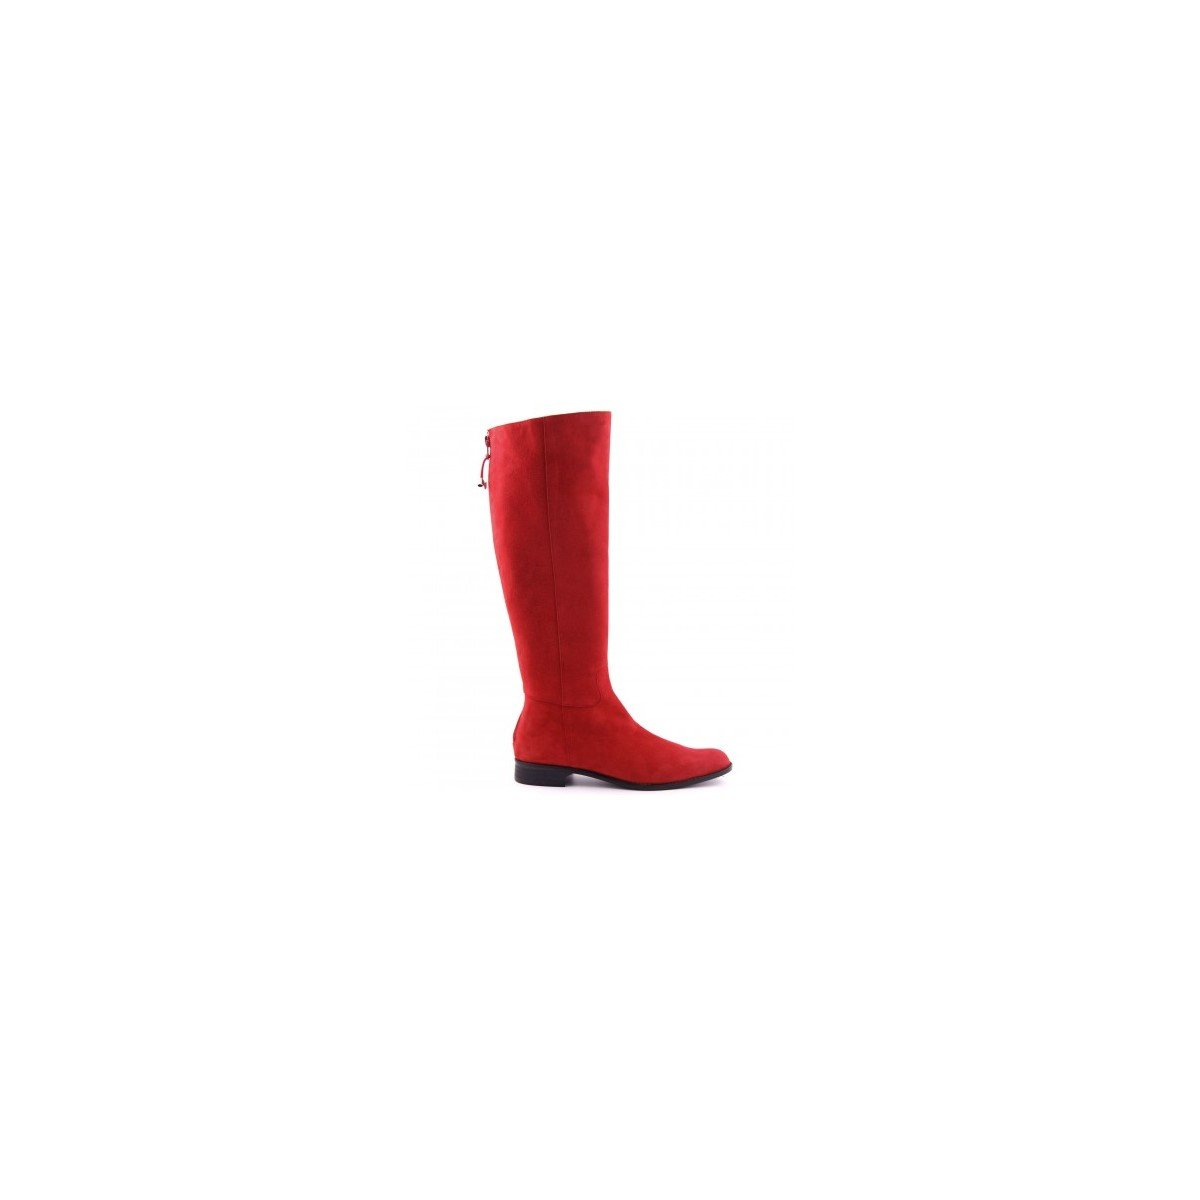 Exclusif Paris Kim B073XJSZTX Bottes Kim 19981 Rouge 3efec31 - boatplans.space